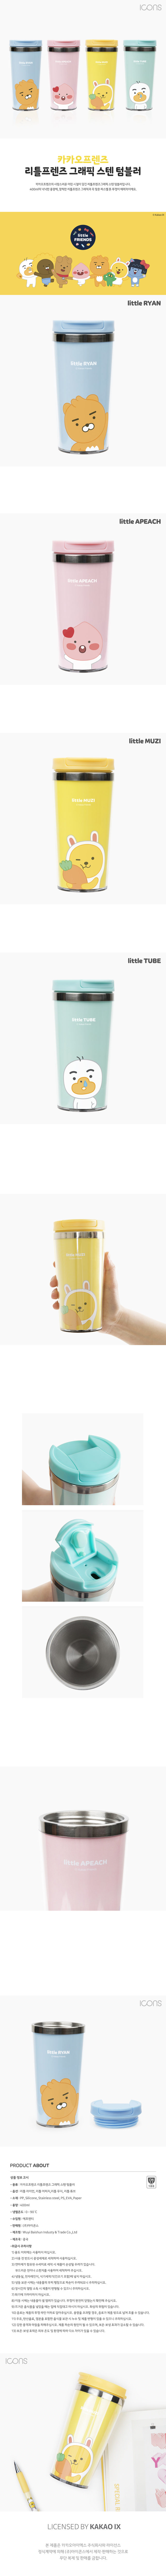 [Kakao Friends, Little Friends] Graphic Stainless Tumbler -holiholic.com